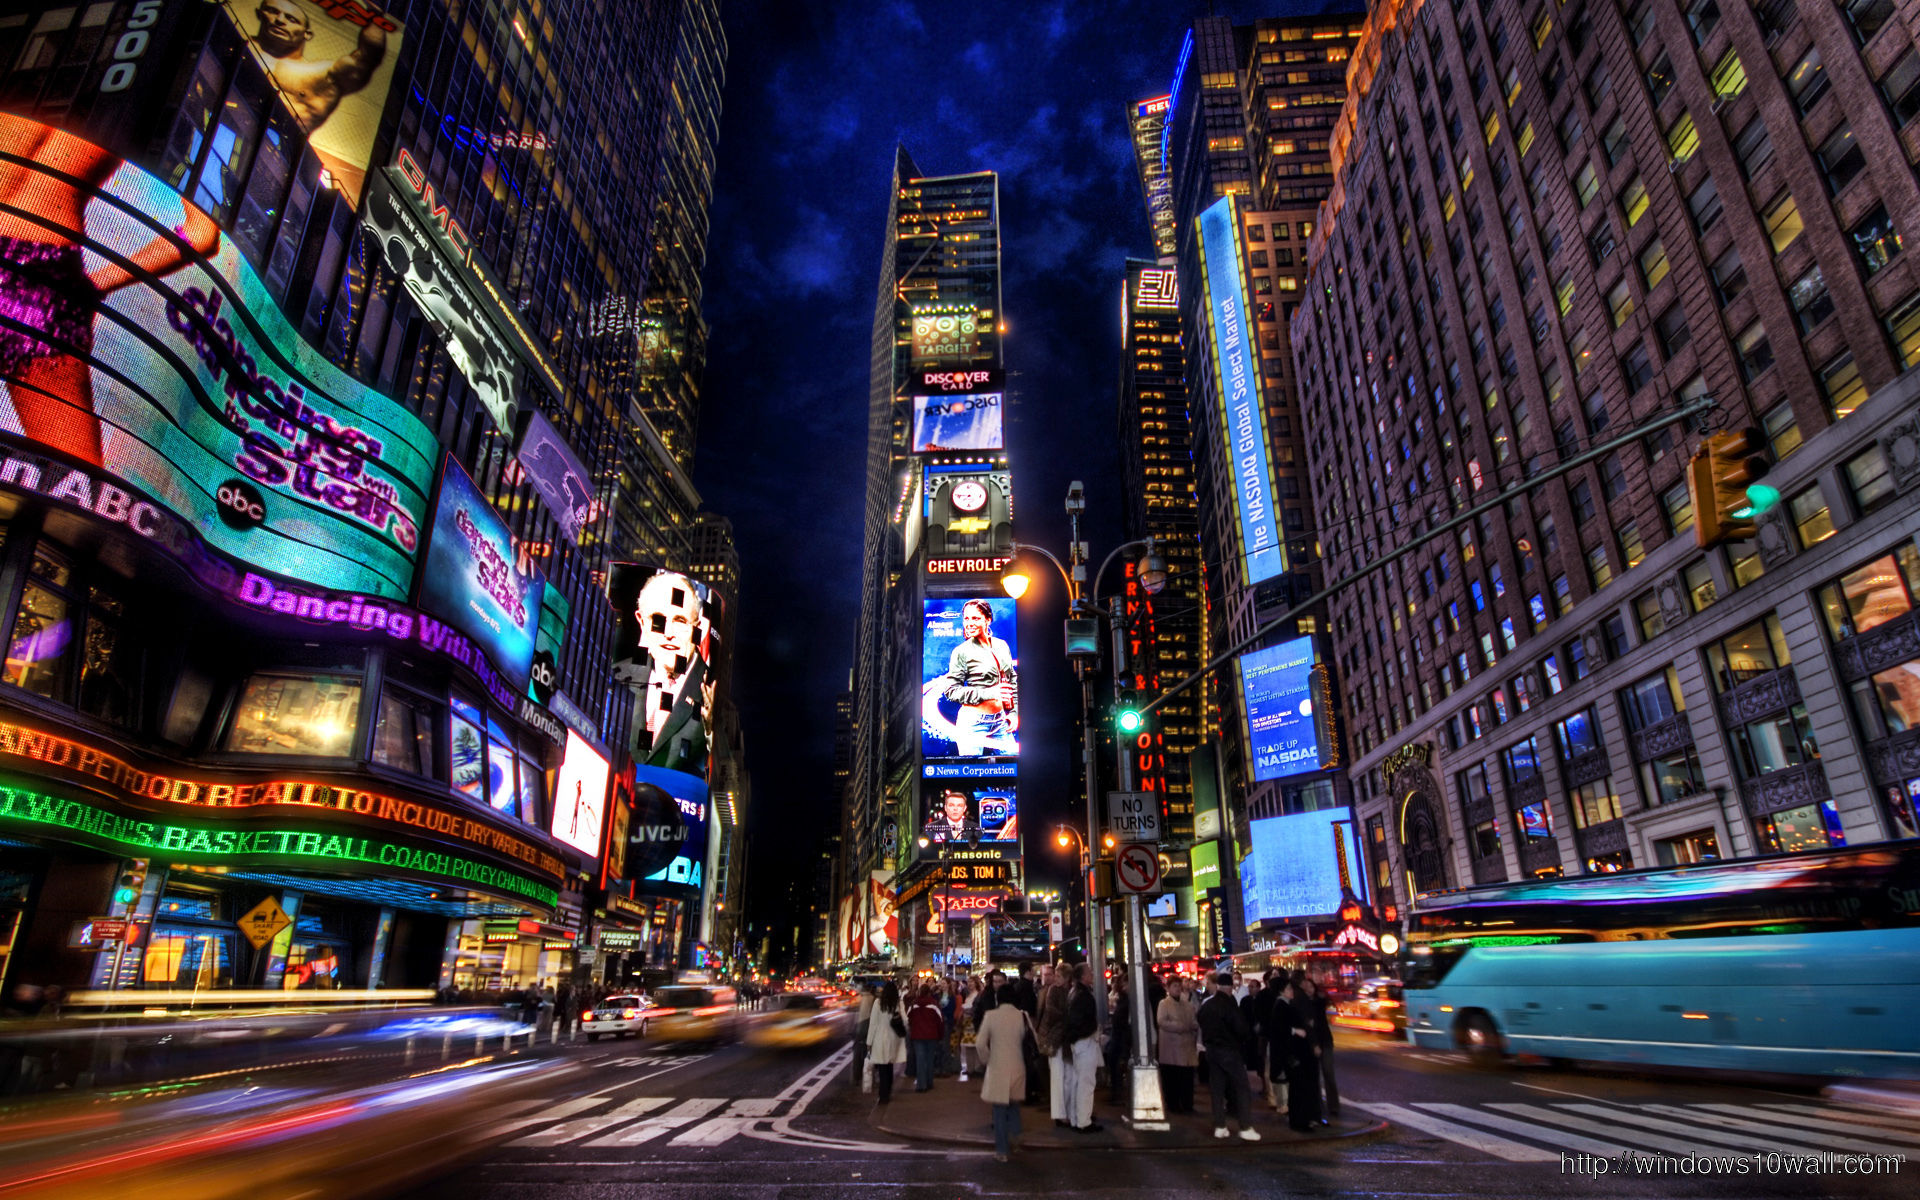 New York City Stunning Widescreen Hd 1080p Wallpaper